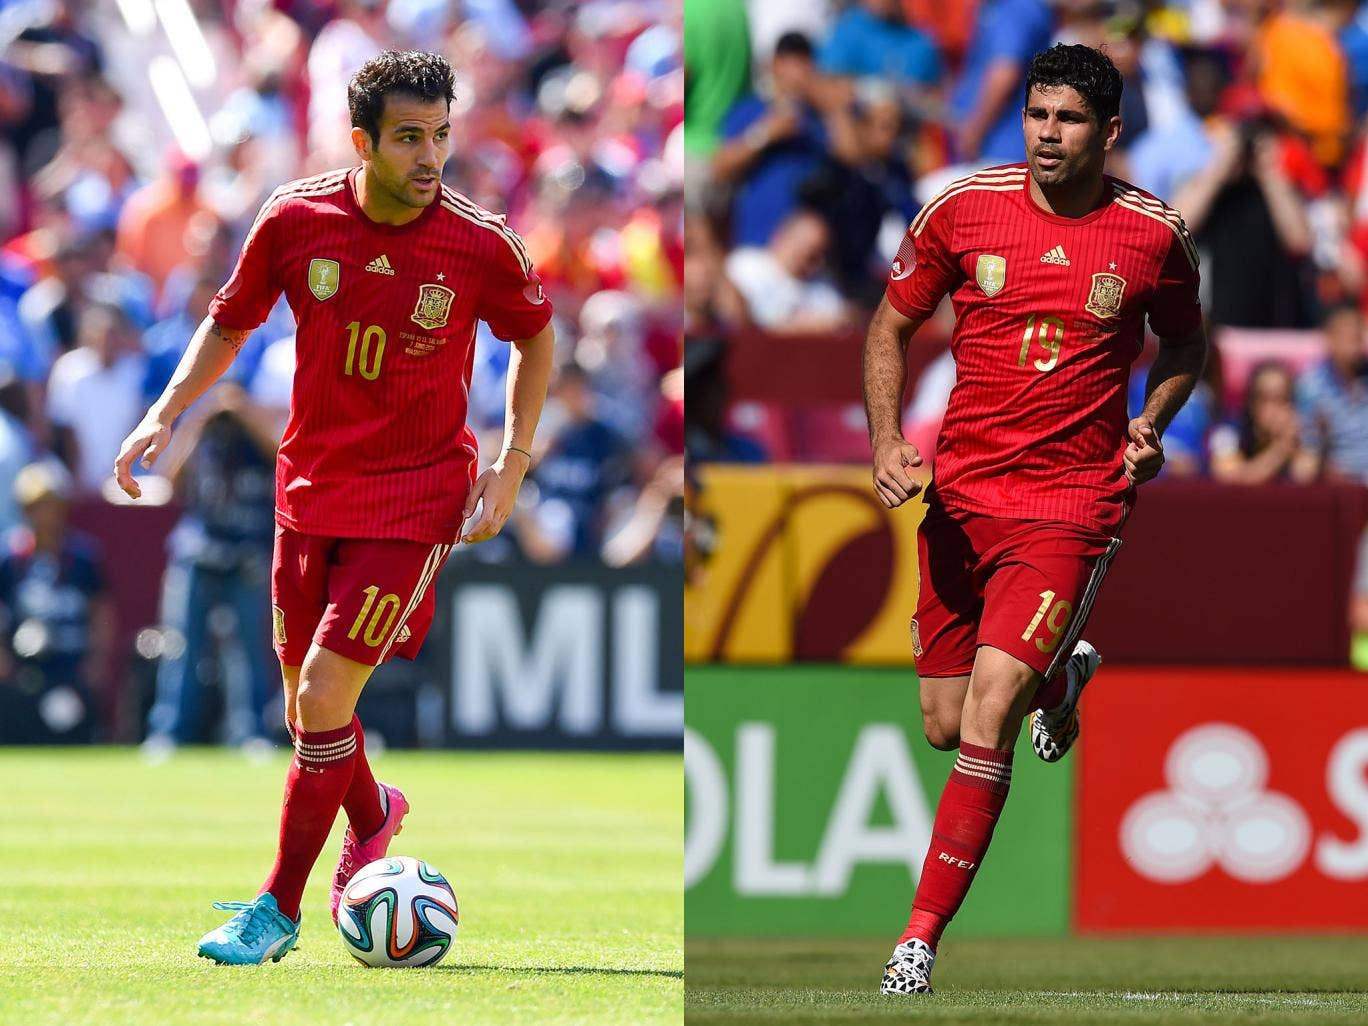 Cesc Fabregas and Diego Costa could both join Chelsea this week